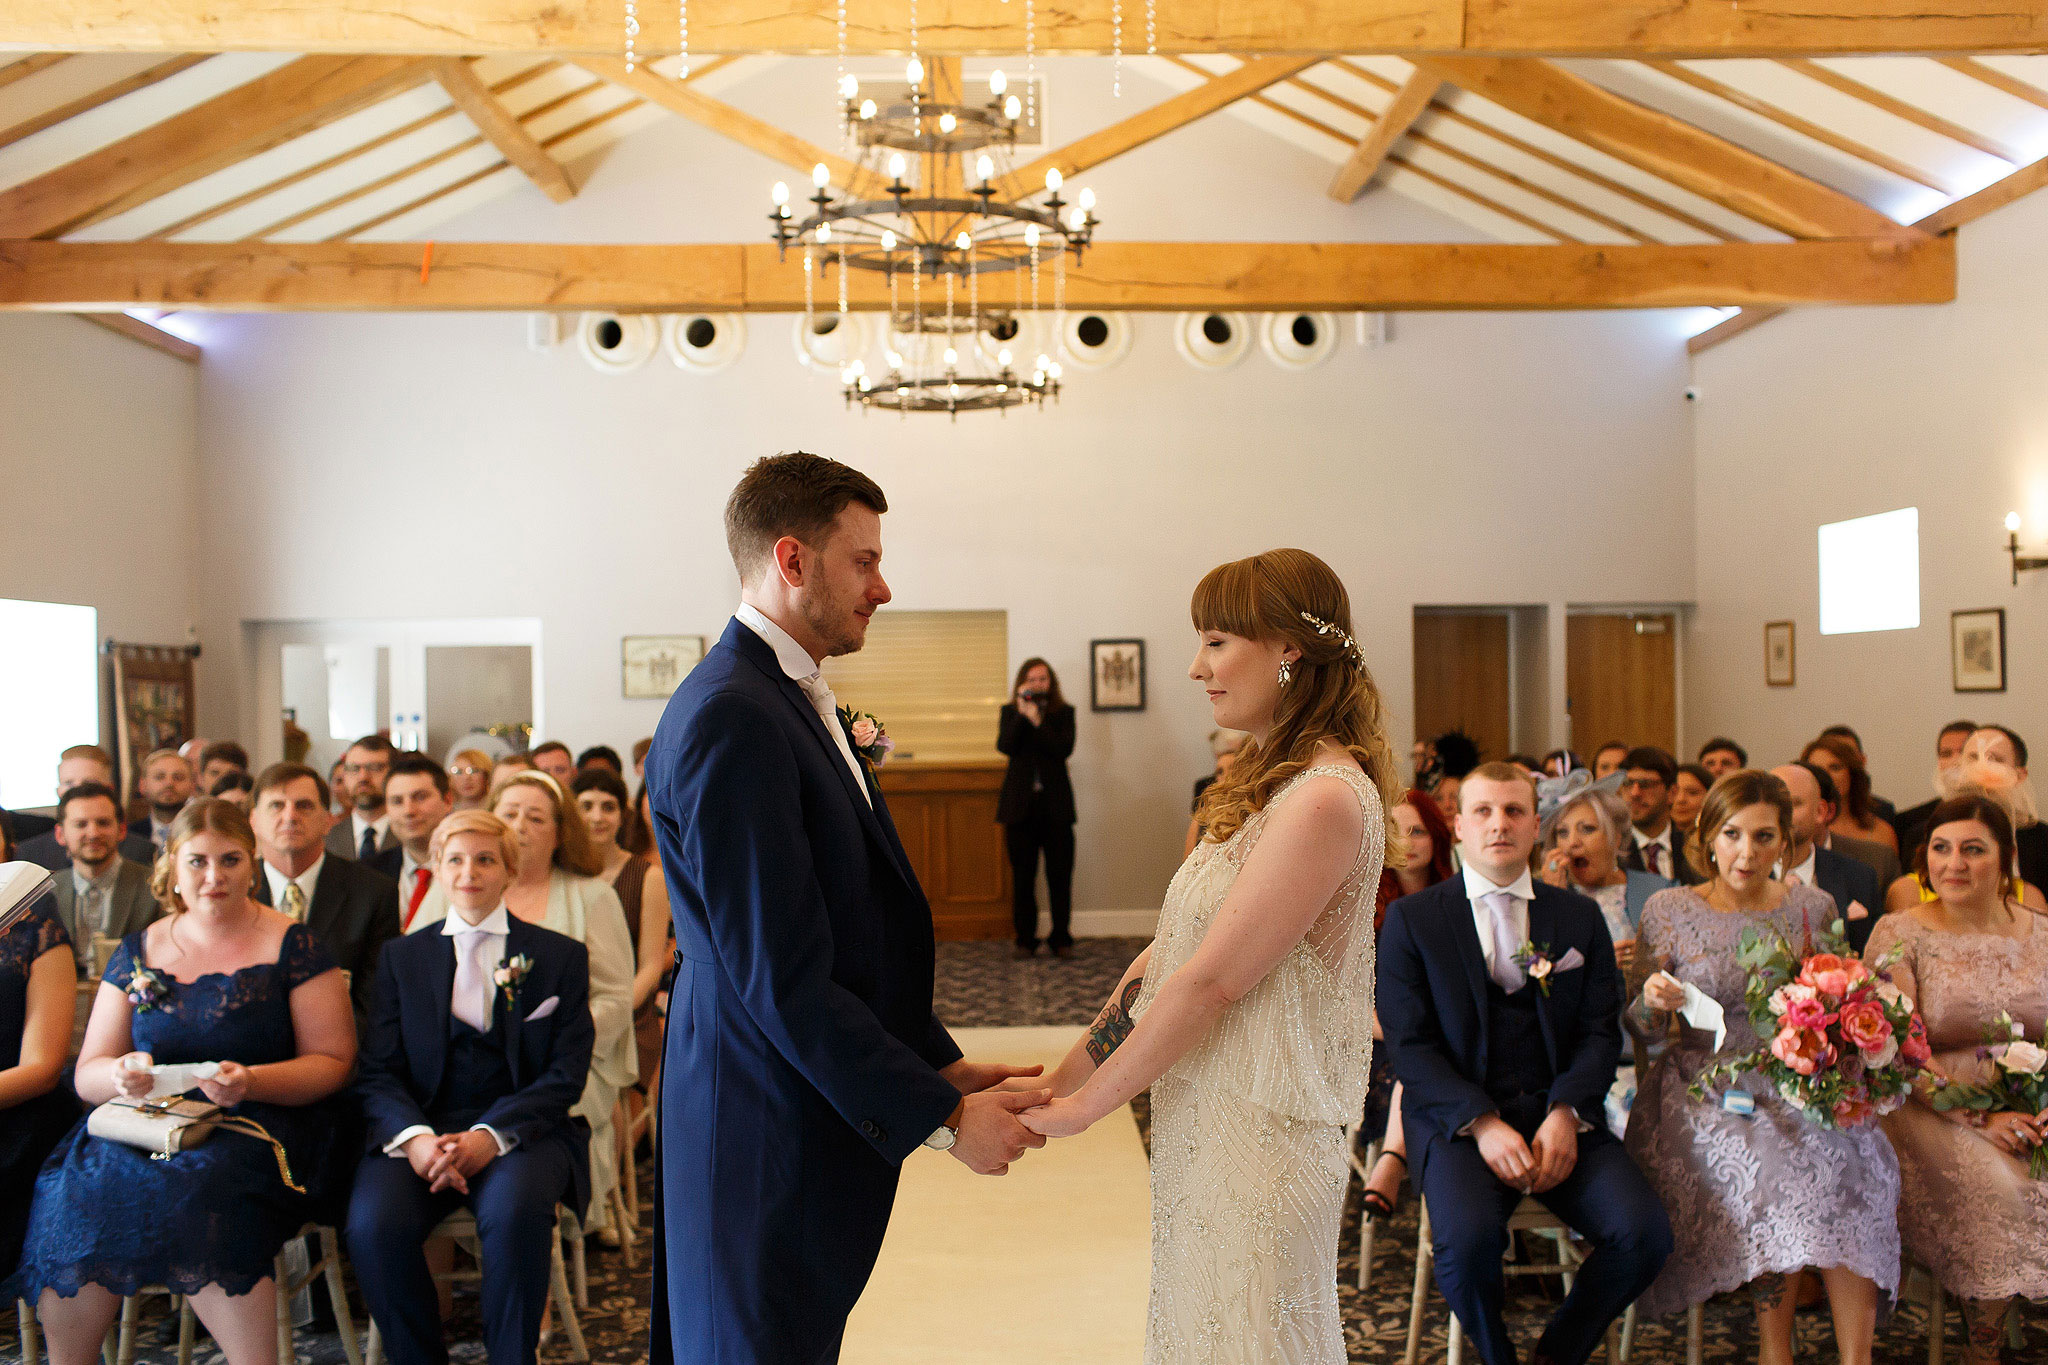 Bride and groom at the top of the aisle holding hands during wedding ceremony - The Villa at Wrea Green Wedding Photography - Toni Darcy Photography